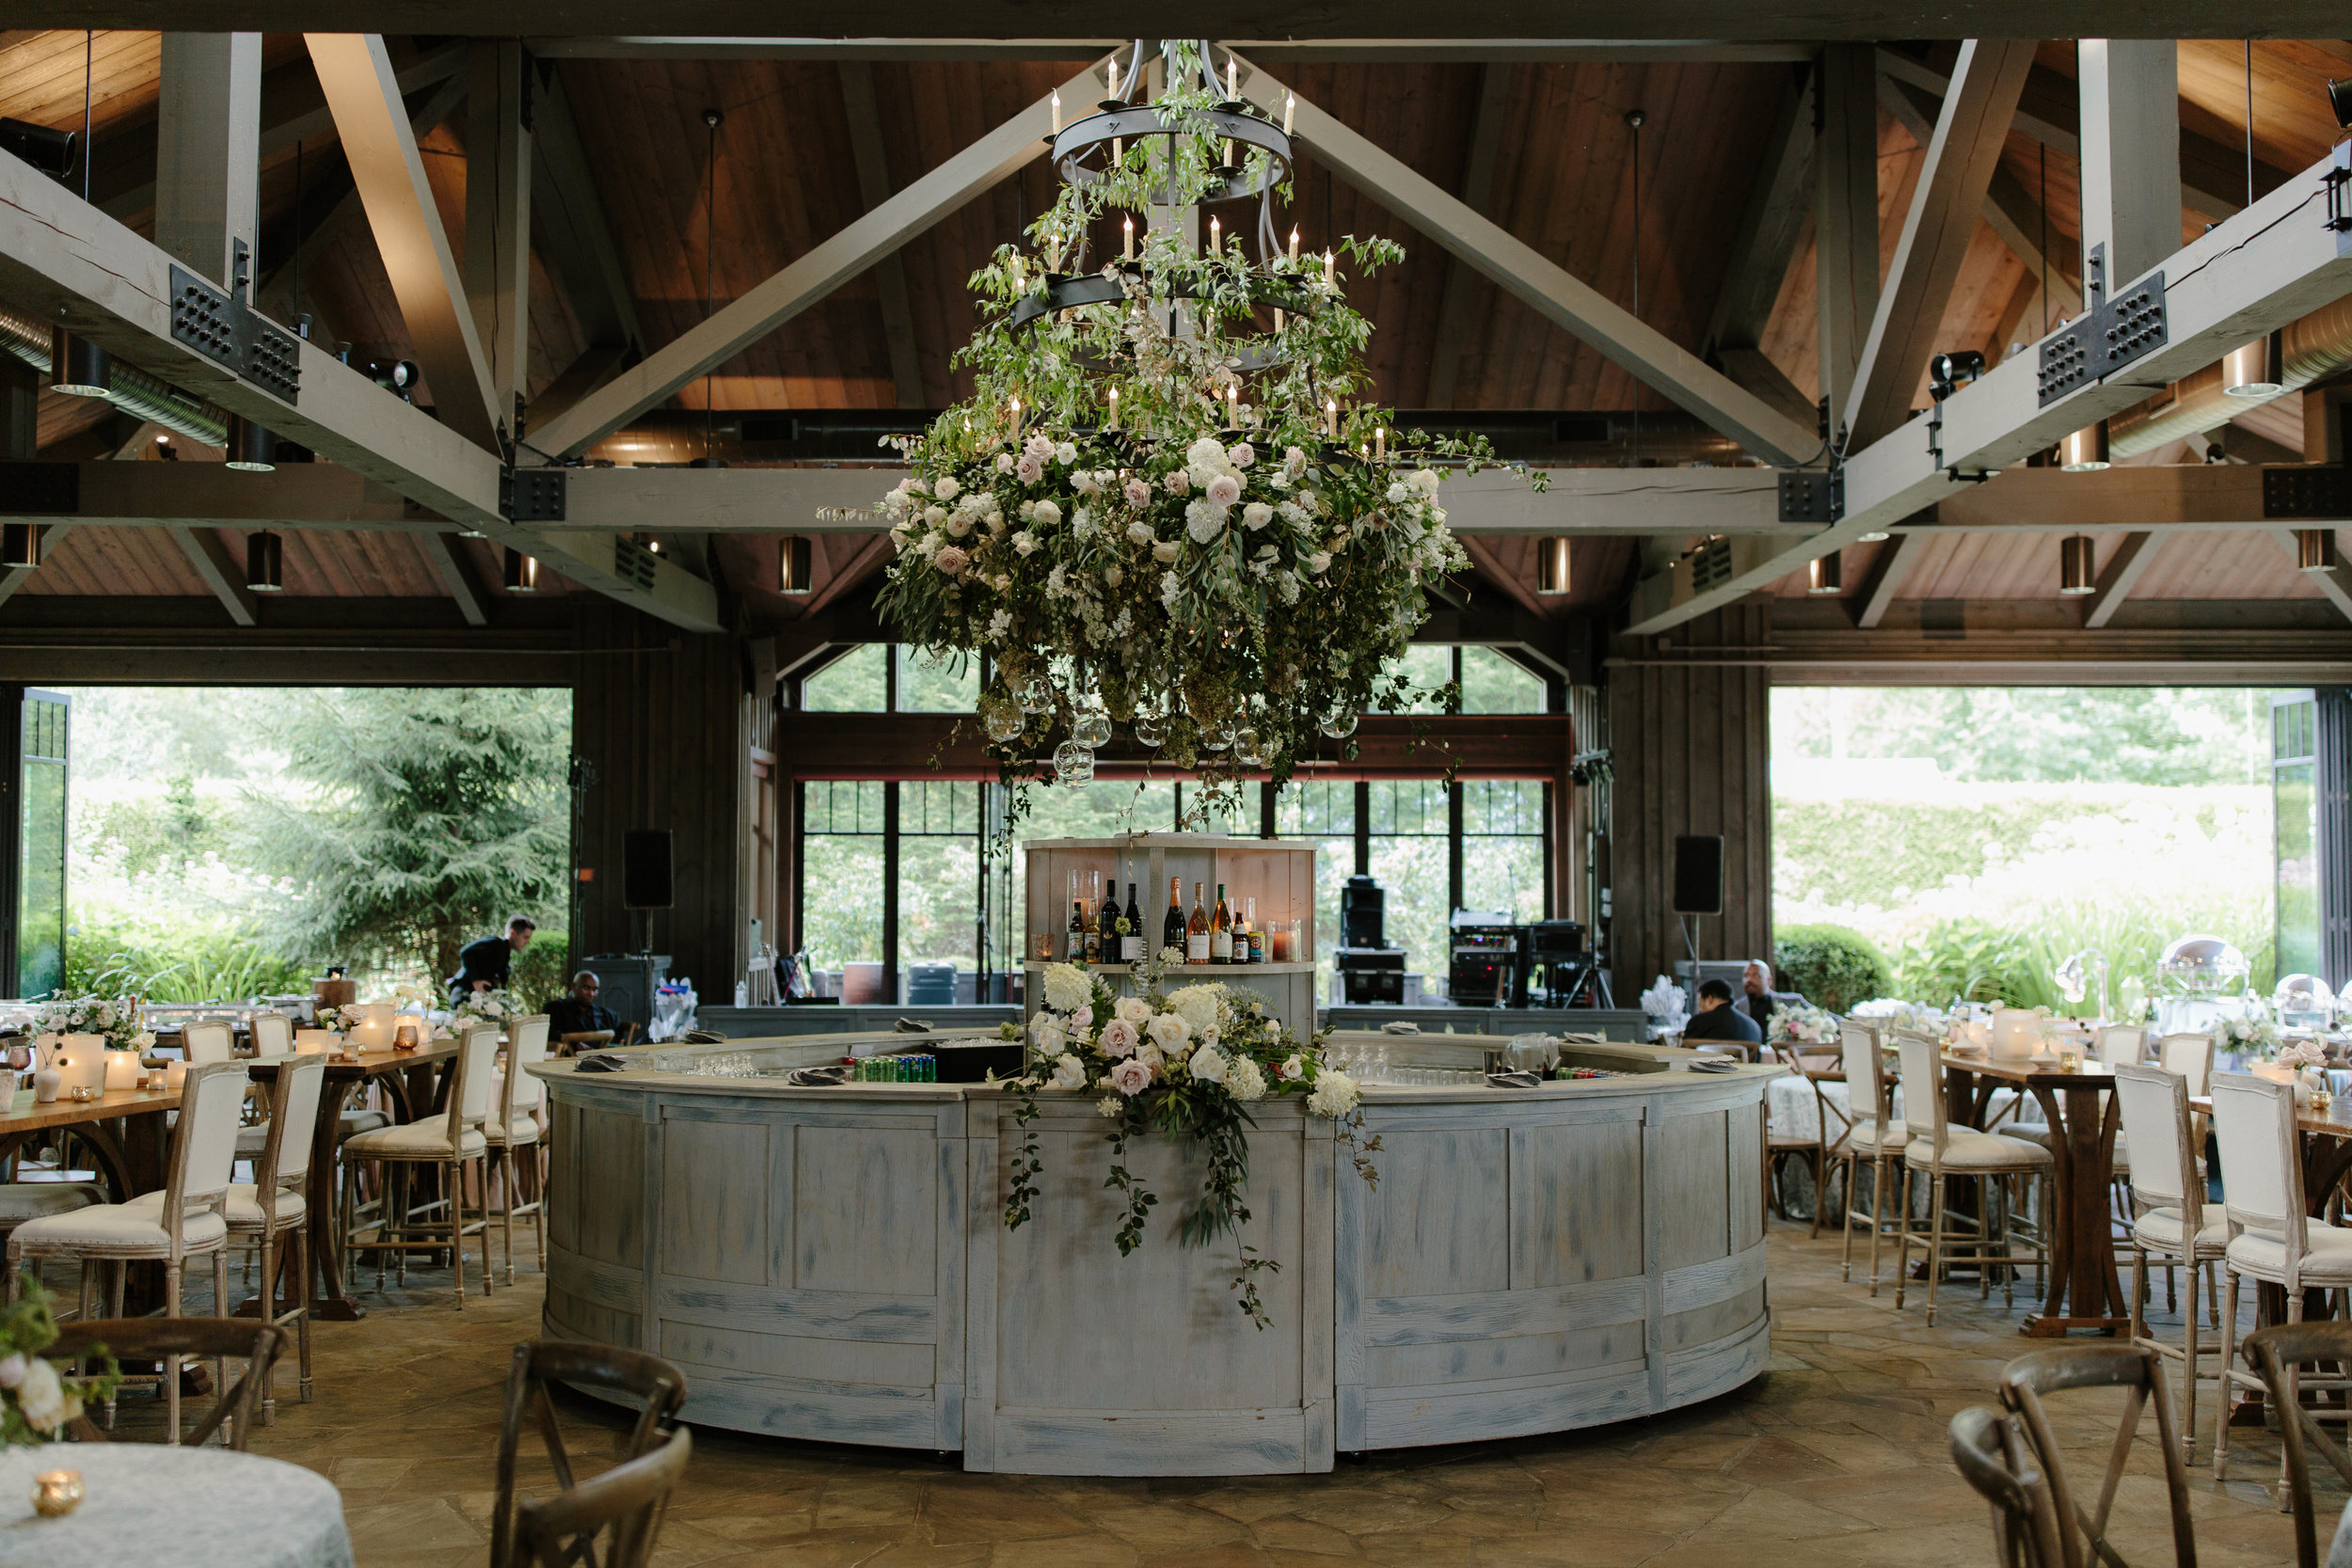 North Carolina Wedding Florist, Highlands North Carolina Florist, Highlands Wedding Florist, The Farm at Old Edwards Inn, NC Wedding Florist, Southern Wedding Florist, Asheville Wedding Florist, Luxury Wedding Florist, Luxury Wedding Flowers, Wedding Flowers, Reception Wedding Flowers, Wedding Flower Ideas, Wedding Flower installation, Wedding Flower Chandelier, Floral Chandelier, Luxury Wedding Ideas, Wedding Reception Ideas, Floral Centerpieces, Blush and White Wedding Flowers